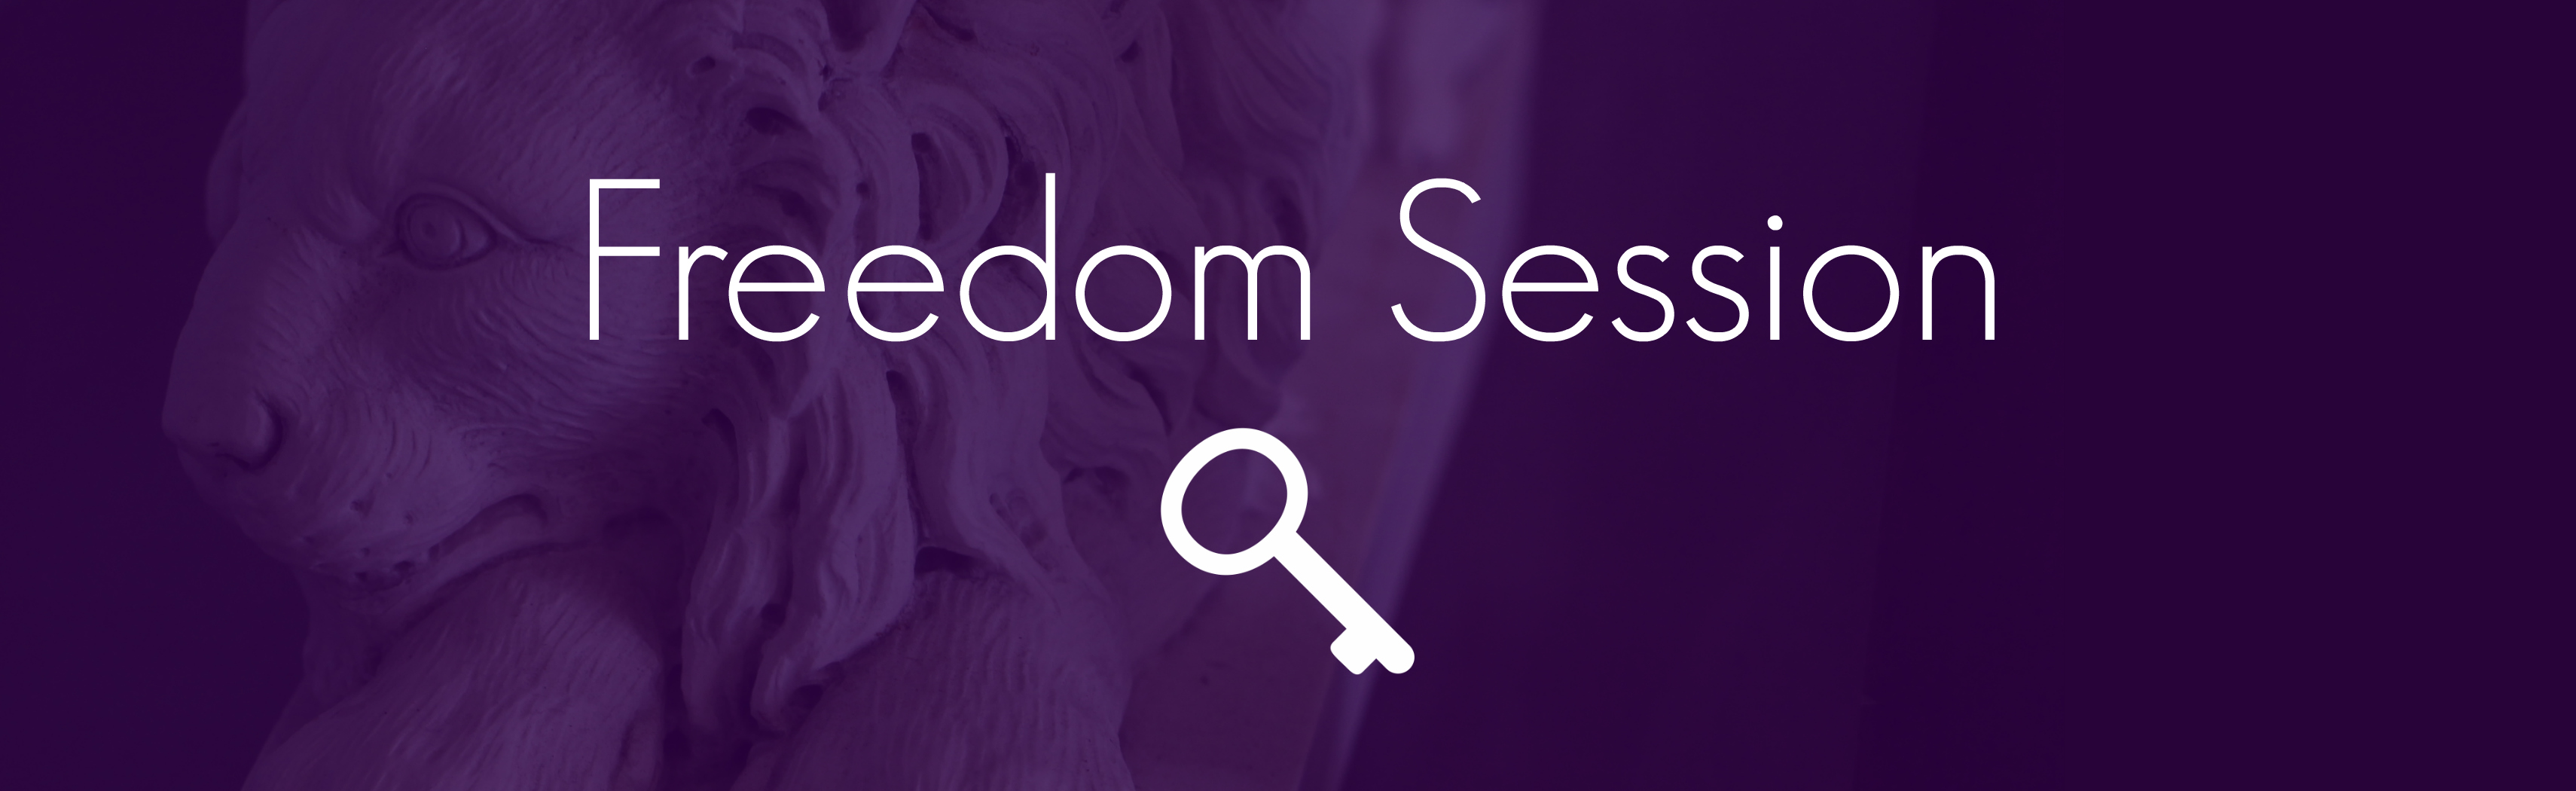 Freedom Sessions Banner